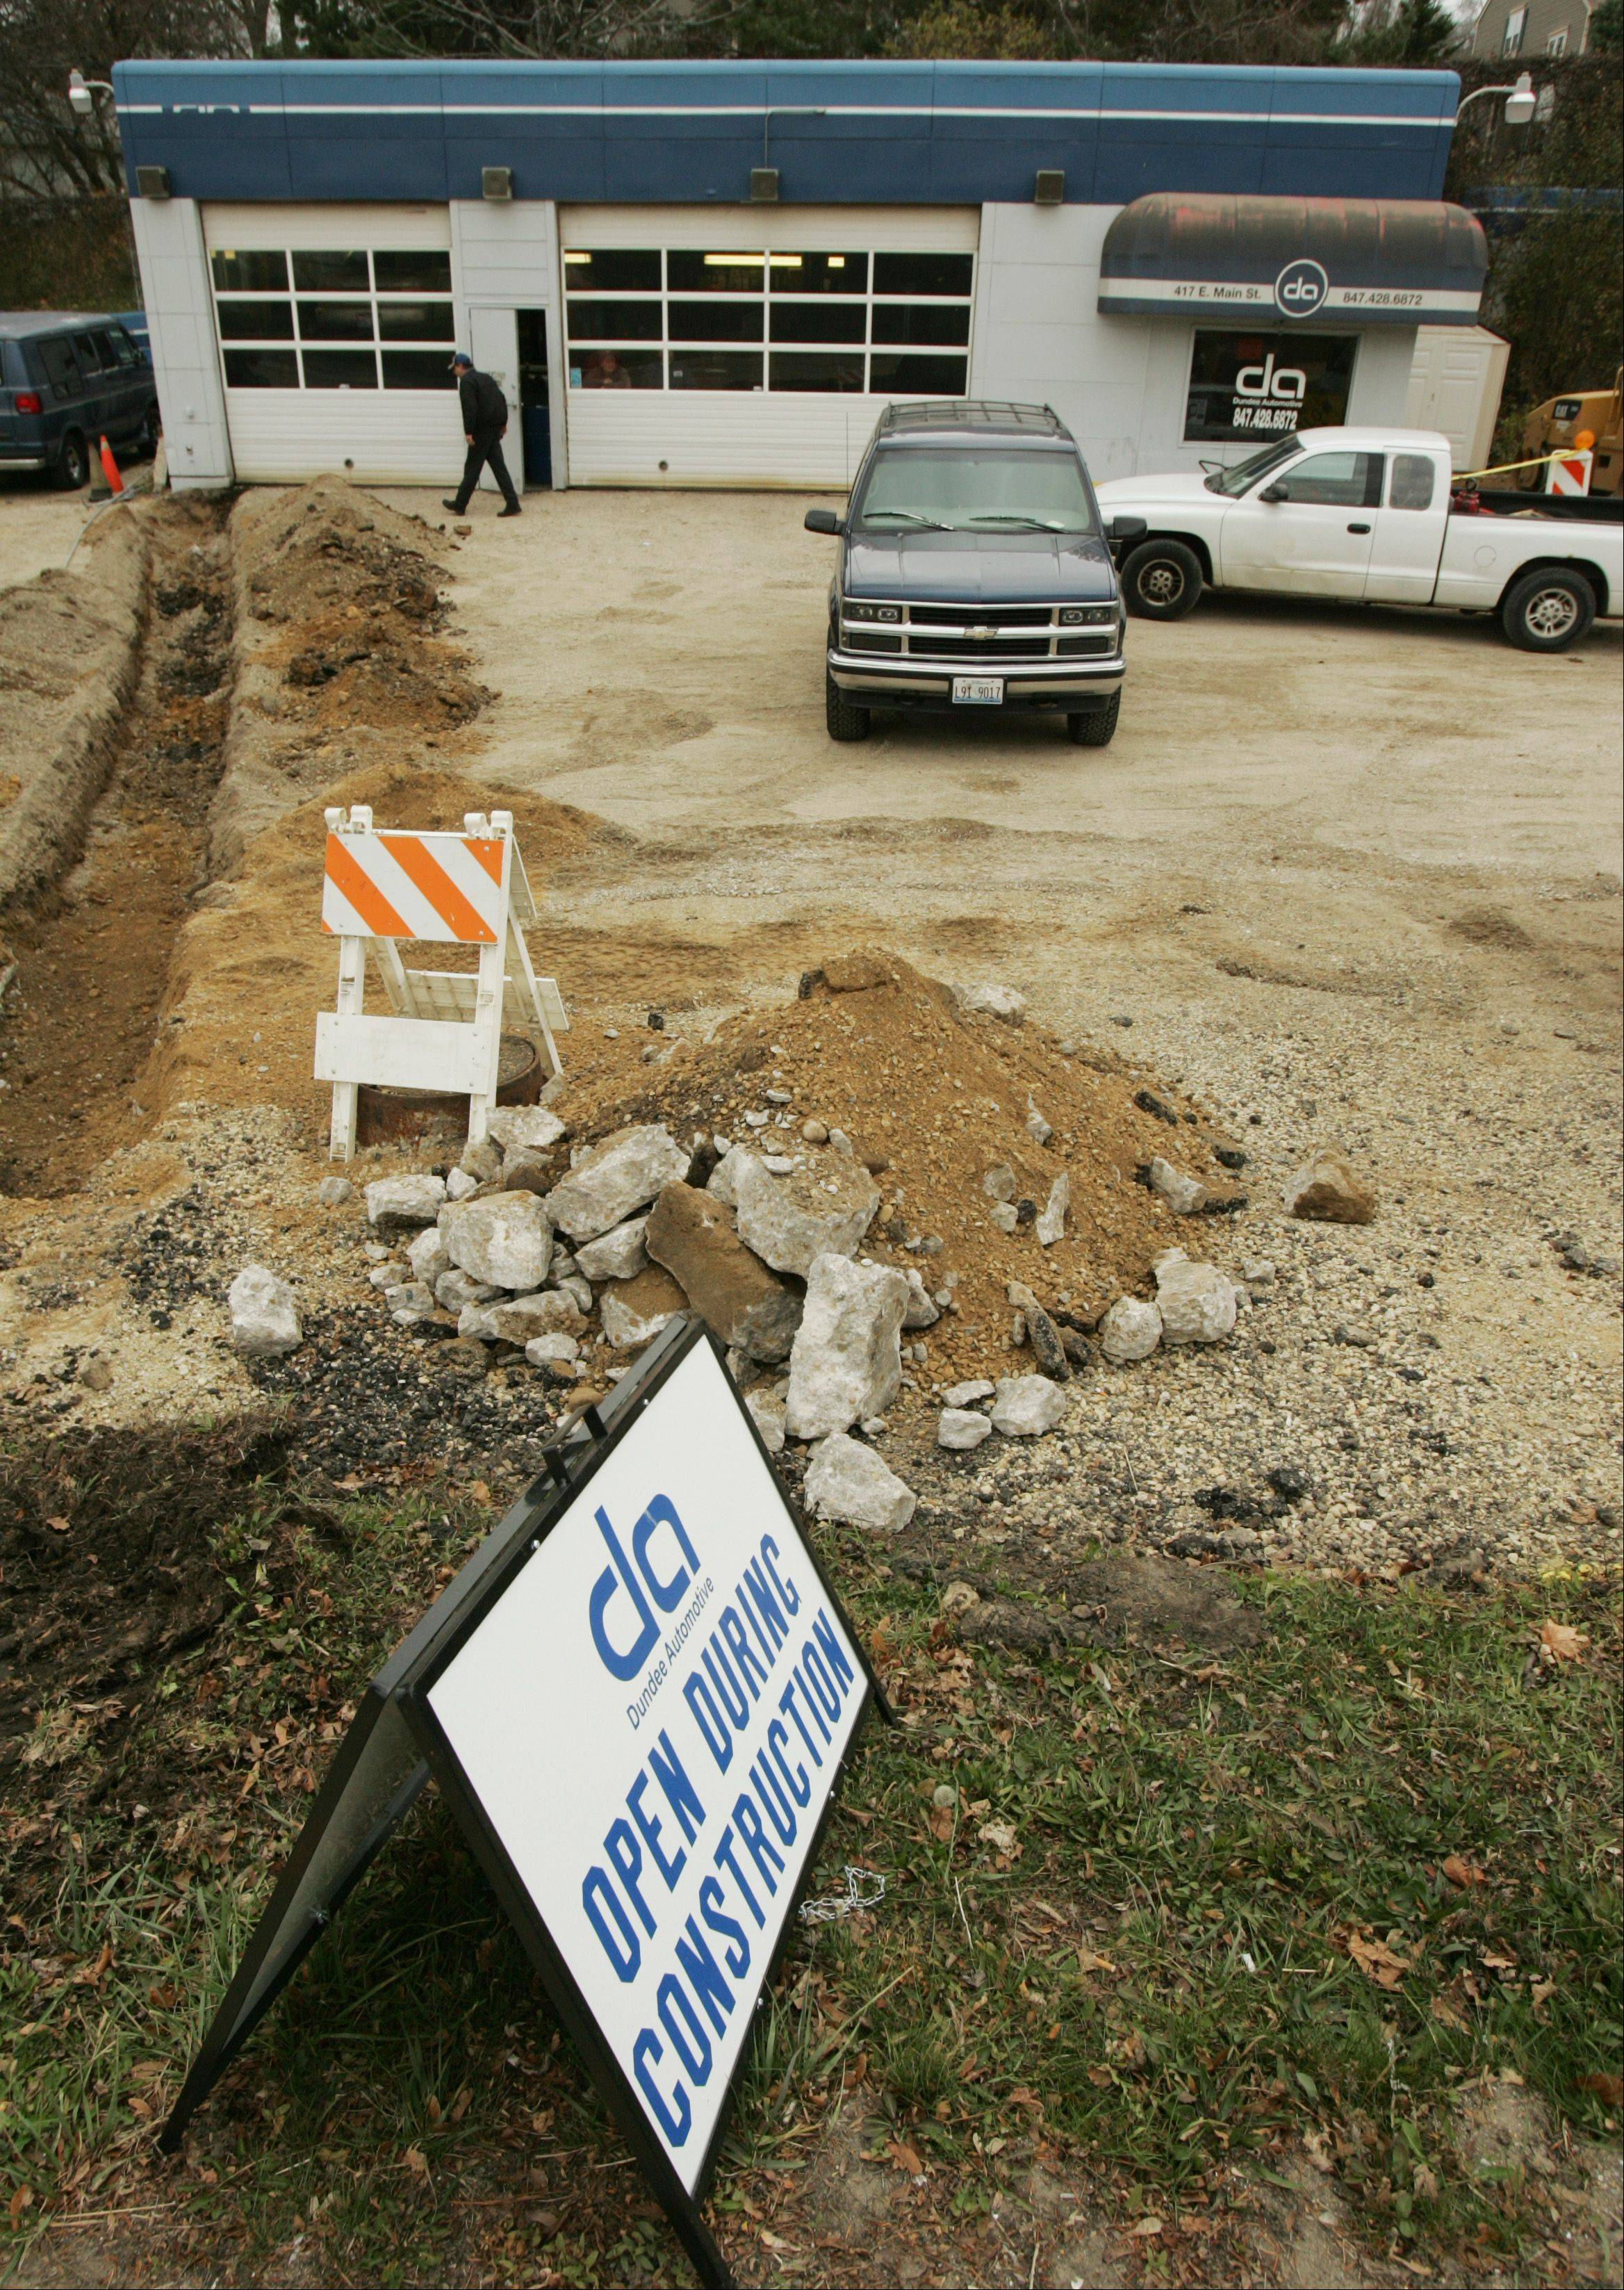 Despite all the work being done to fix the underground water main problem on the property, Dundee Automotive has stayed open in East Dundee. The trench shown here on Monday was dug to install electrical lines and isn't part of the water main repair.